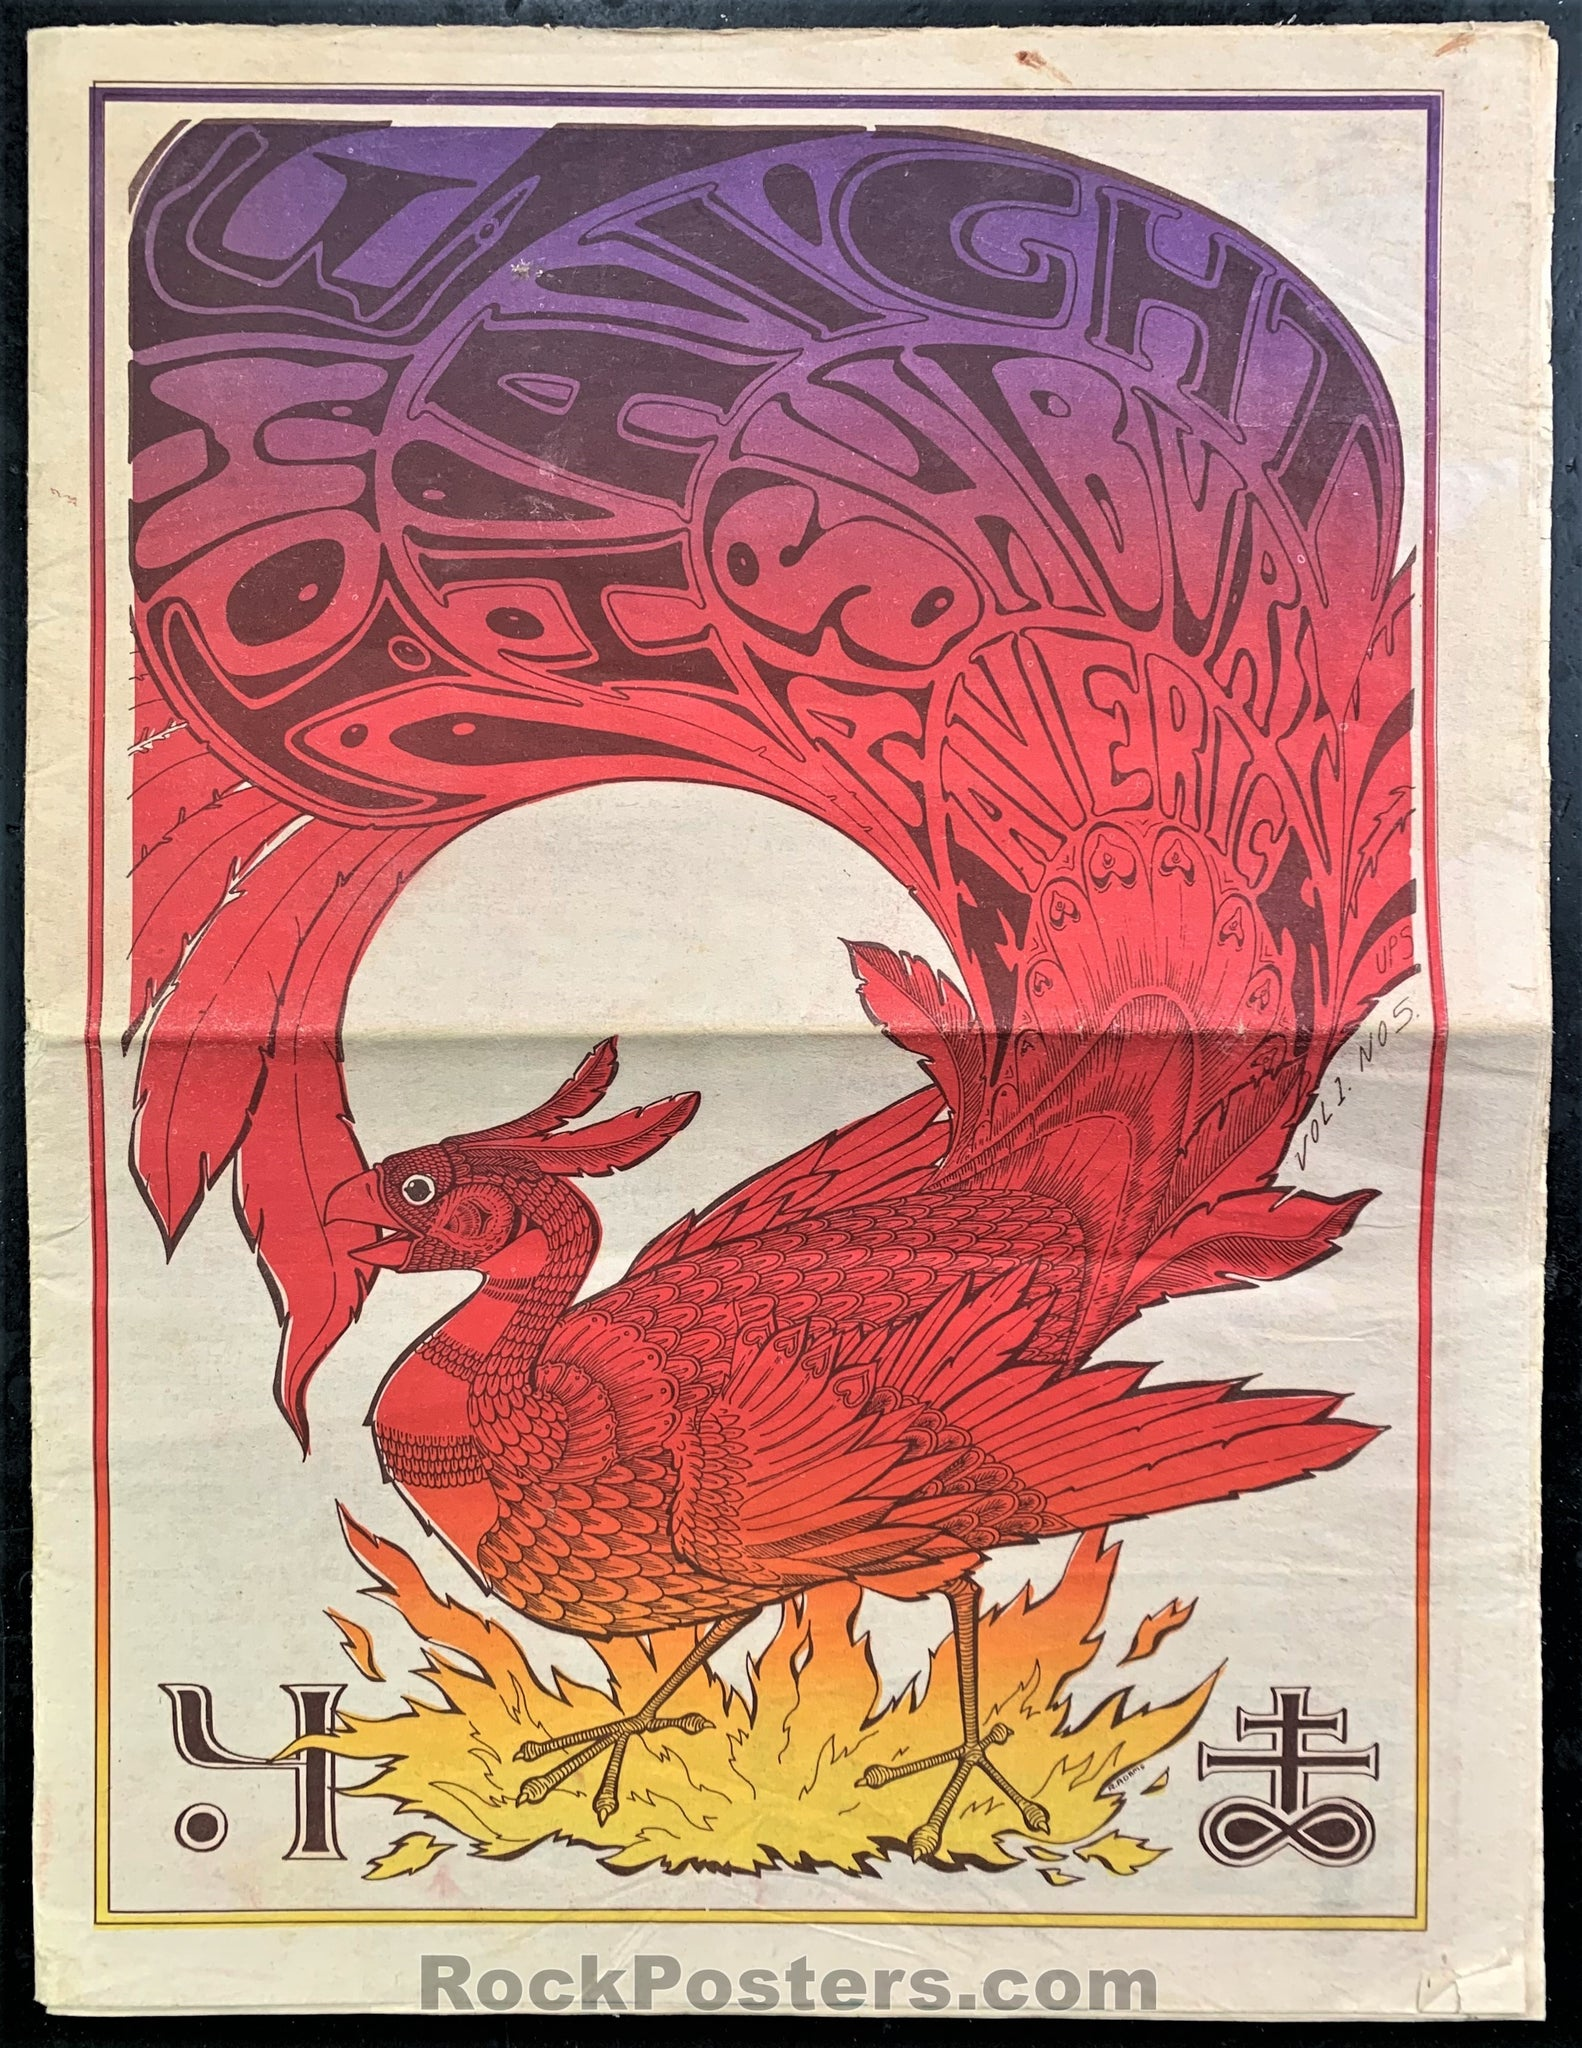 AUCTION - Psychedelic - Haight Ashbury Maverick Number Five 1967 - Underground Newspaper  - Very Good